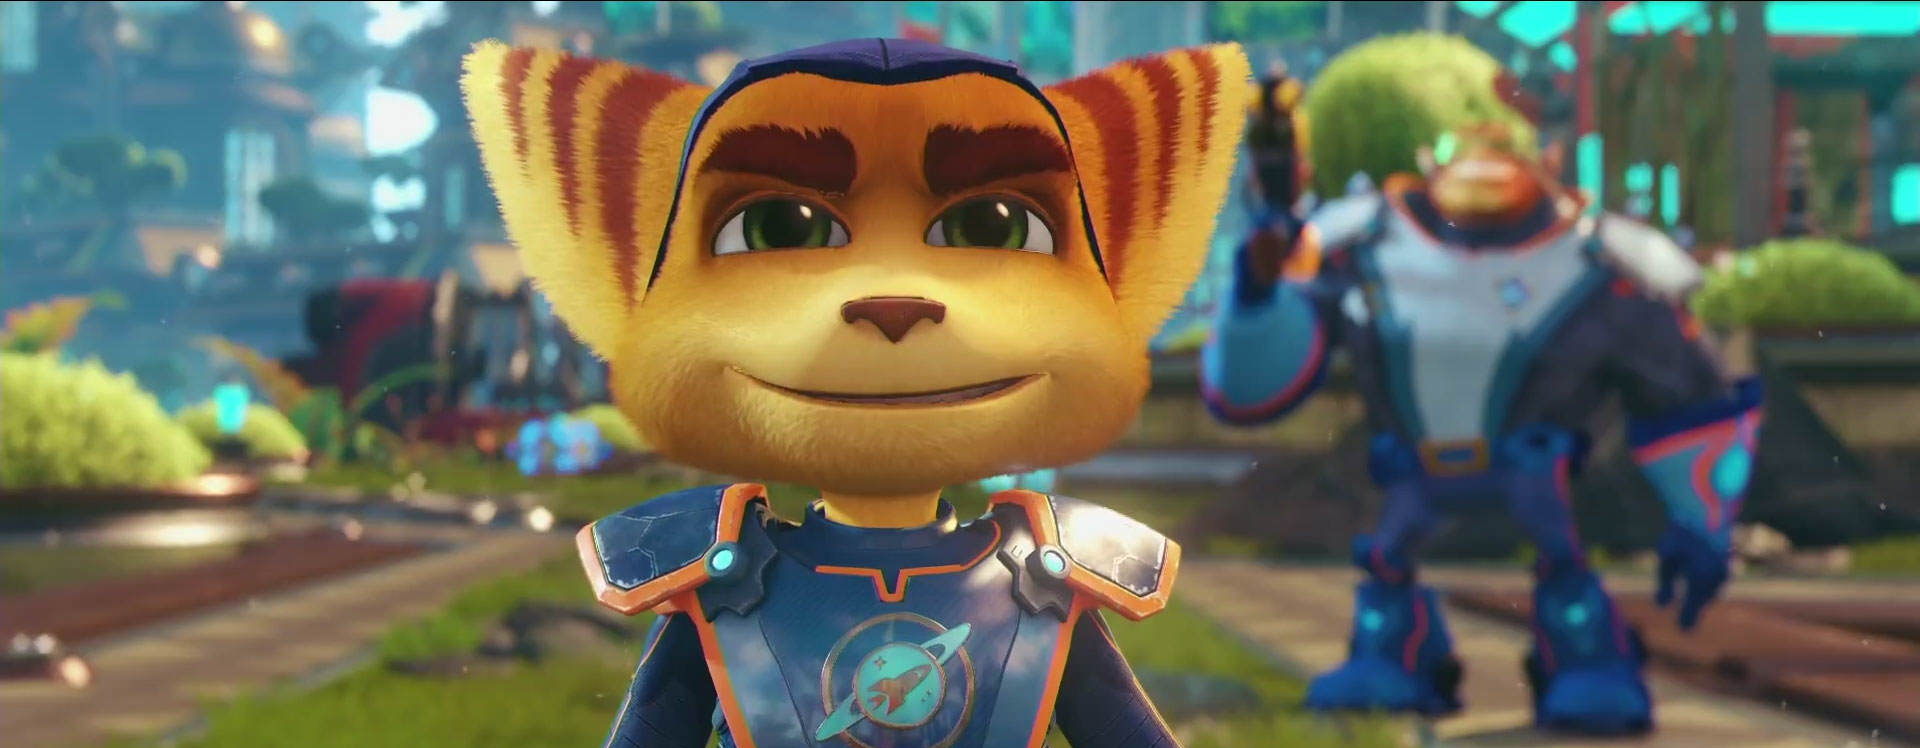 Ratchet & Clank Gets Last Minute Patch To Block Spoilers unpf2o738jbnolinnejc